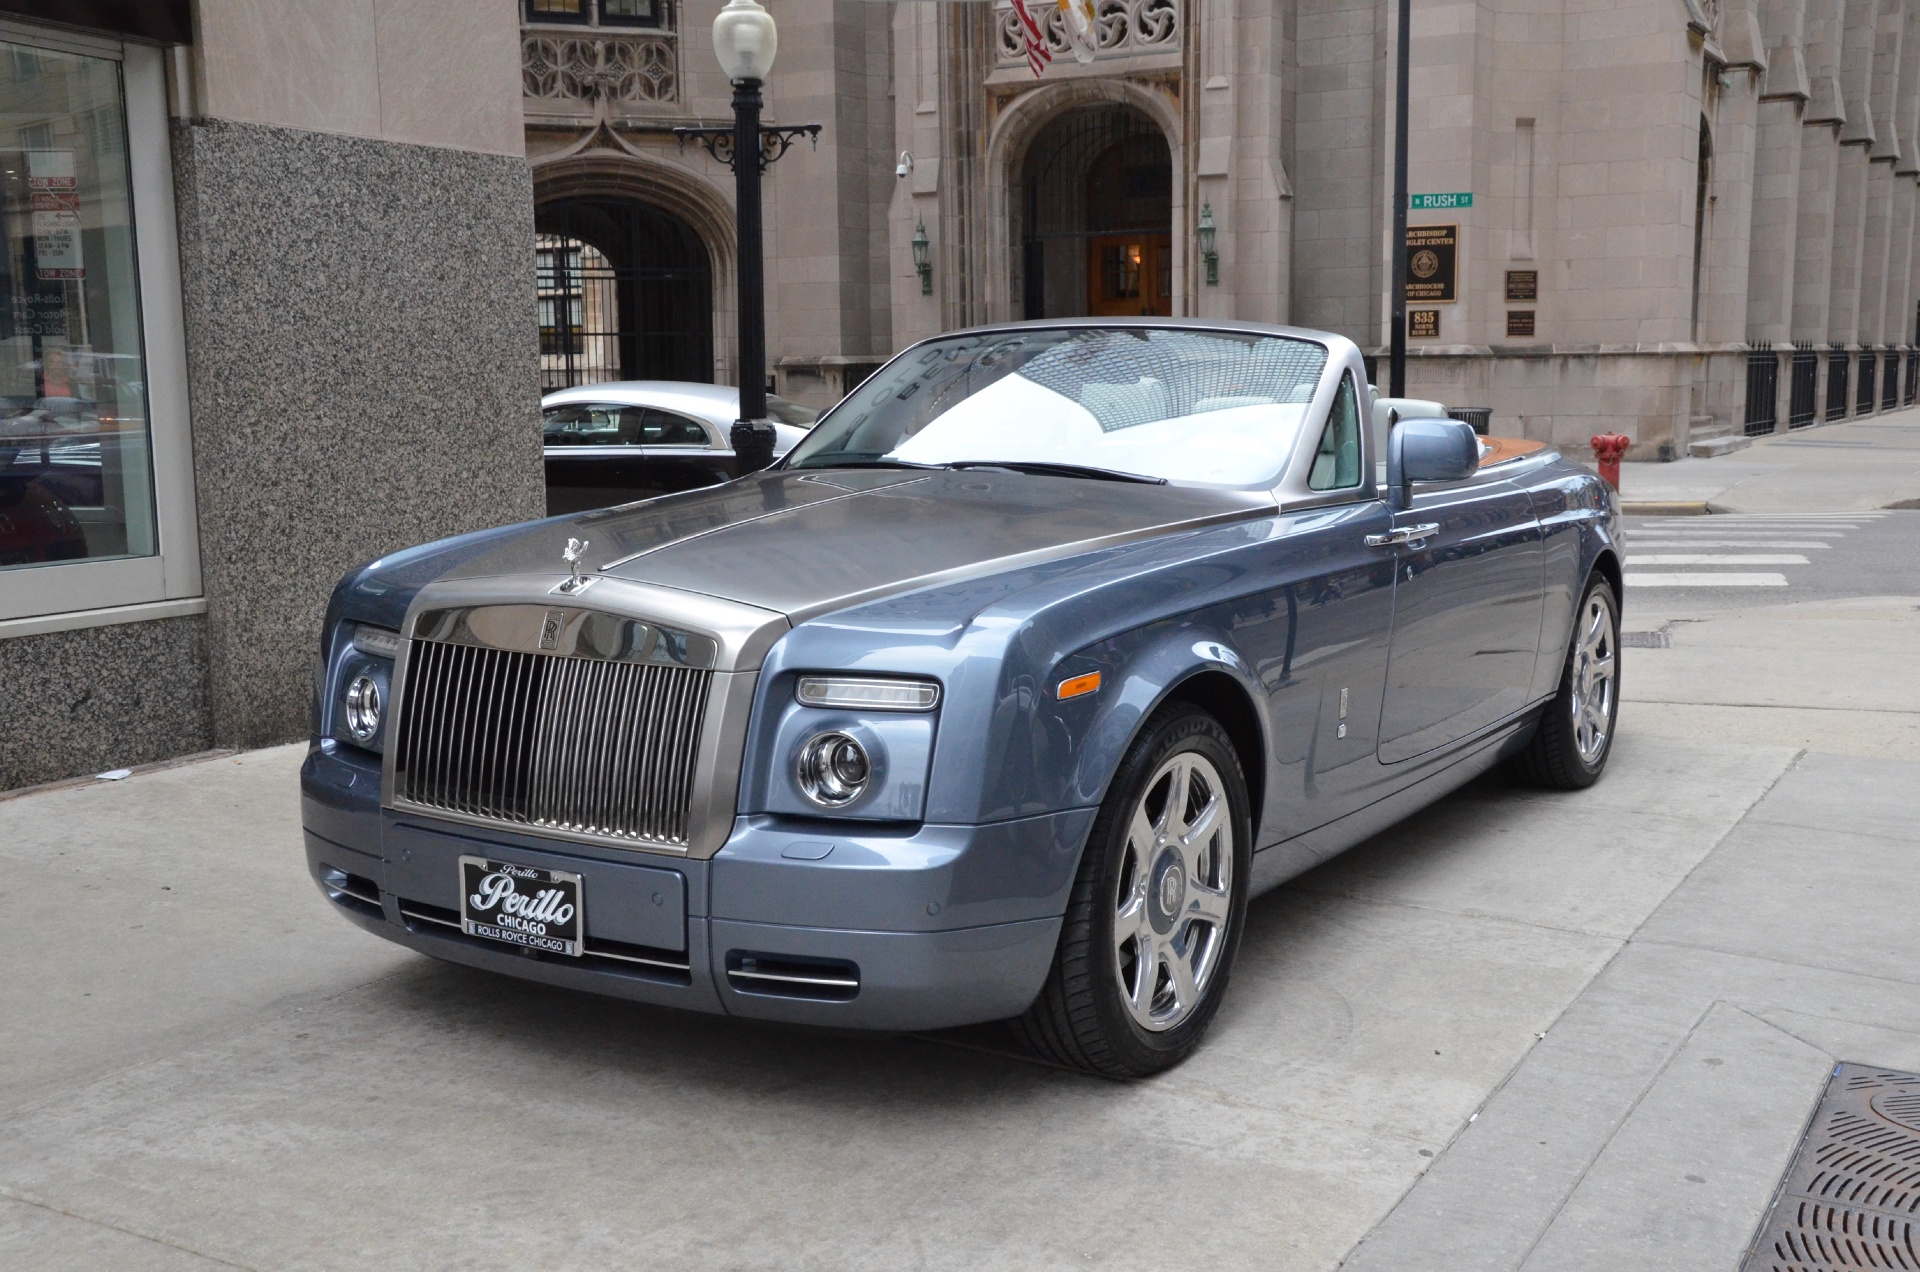 2010 rolls royce phantom drophead coupe stock r129aa for sale near chicago il il rolls. Black Bedroom Furniture Sets. Home Design Ideas